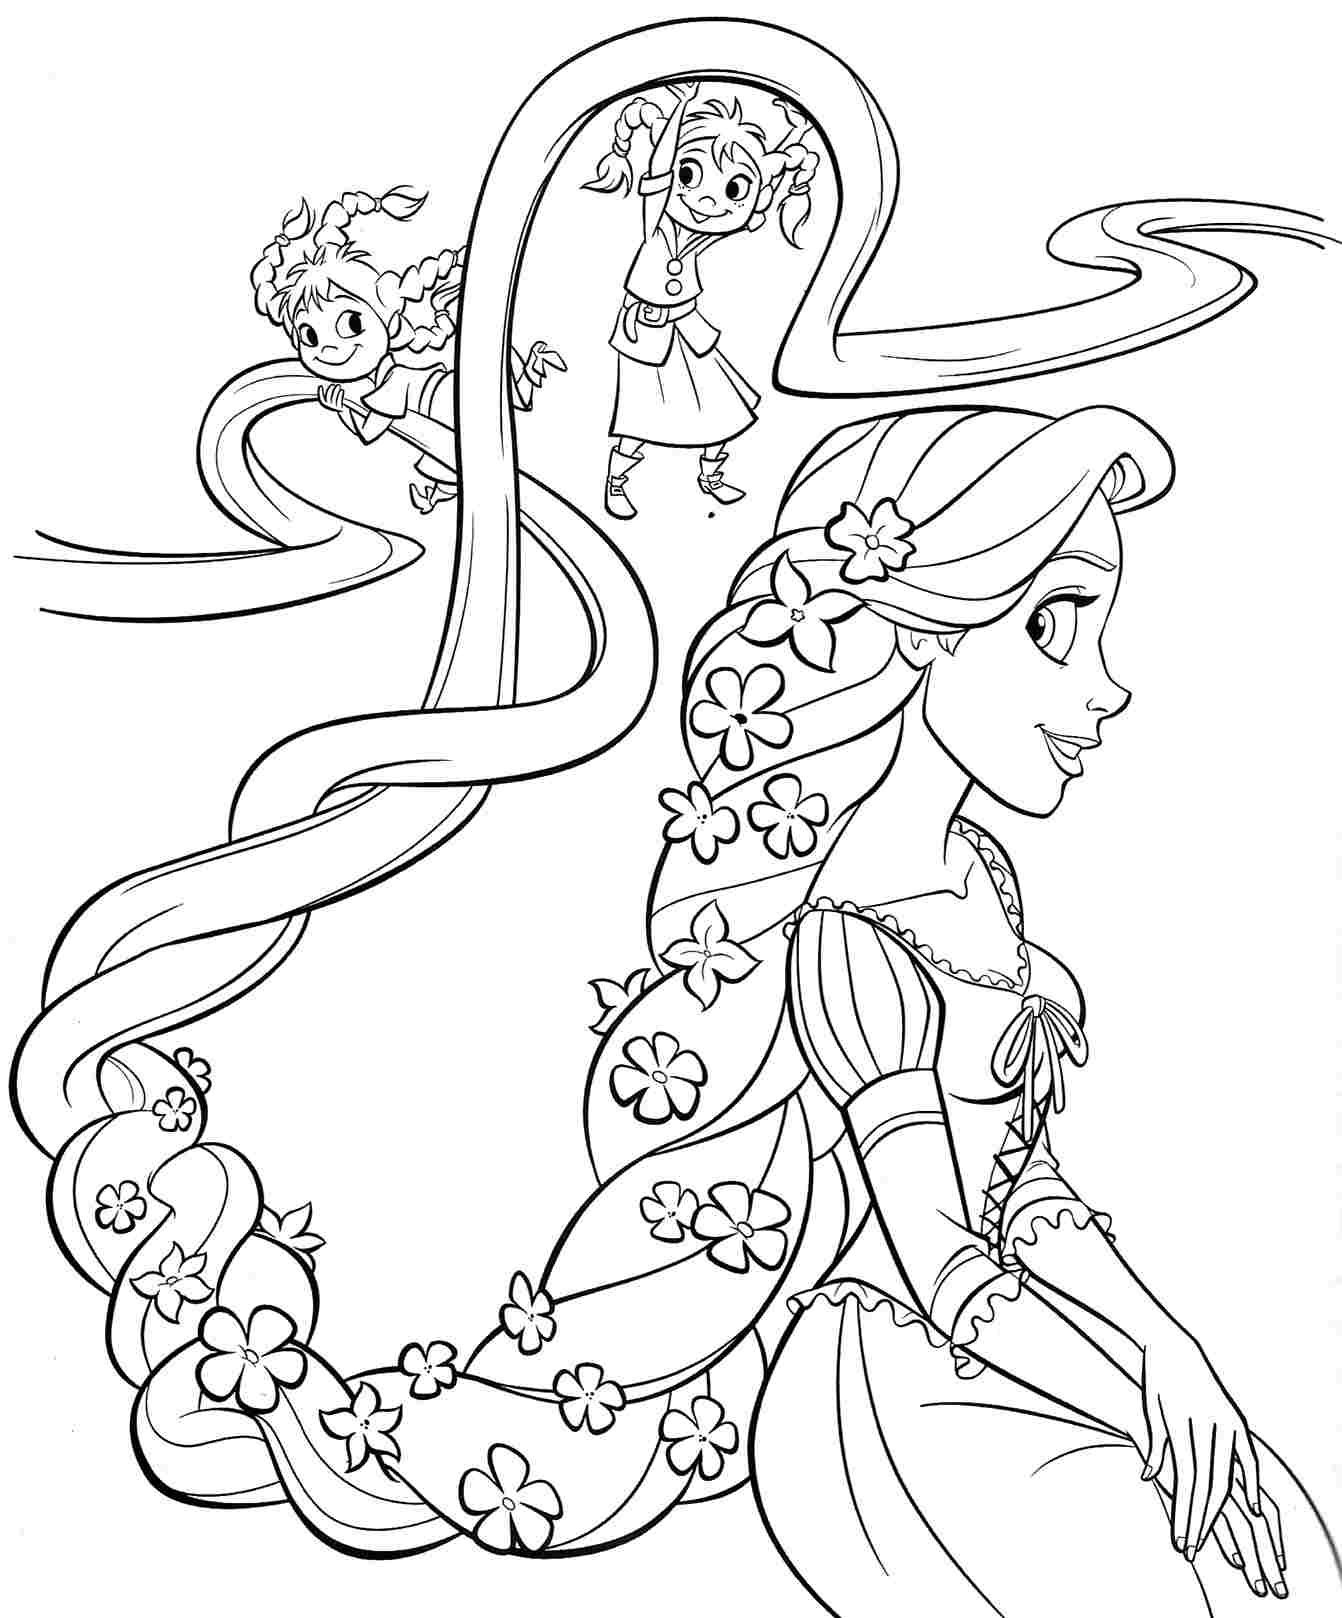 - Printable Free Disney Princess Rapunzel Coloring Sheets For Kids